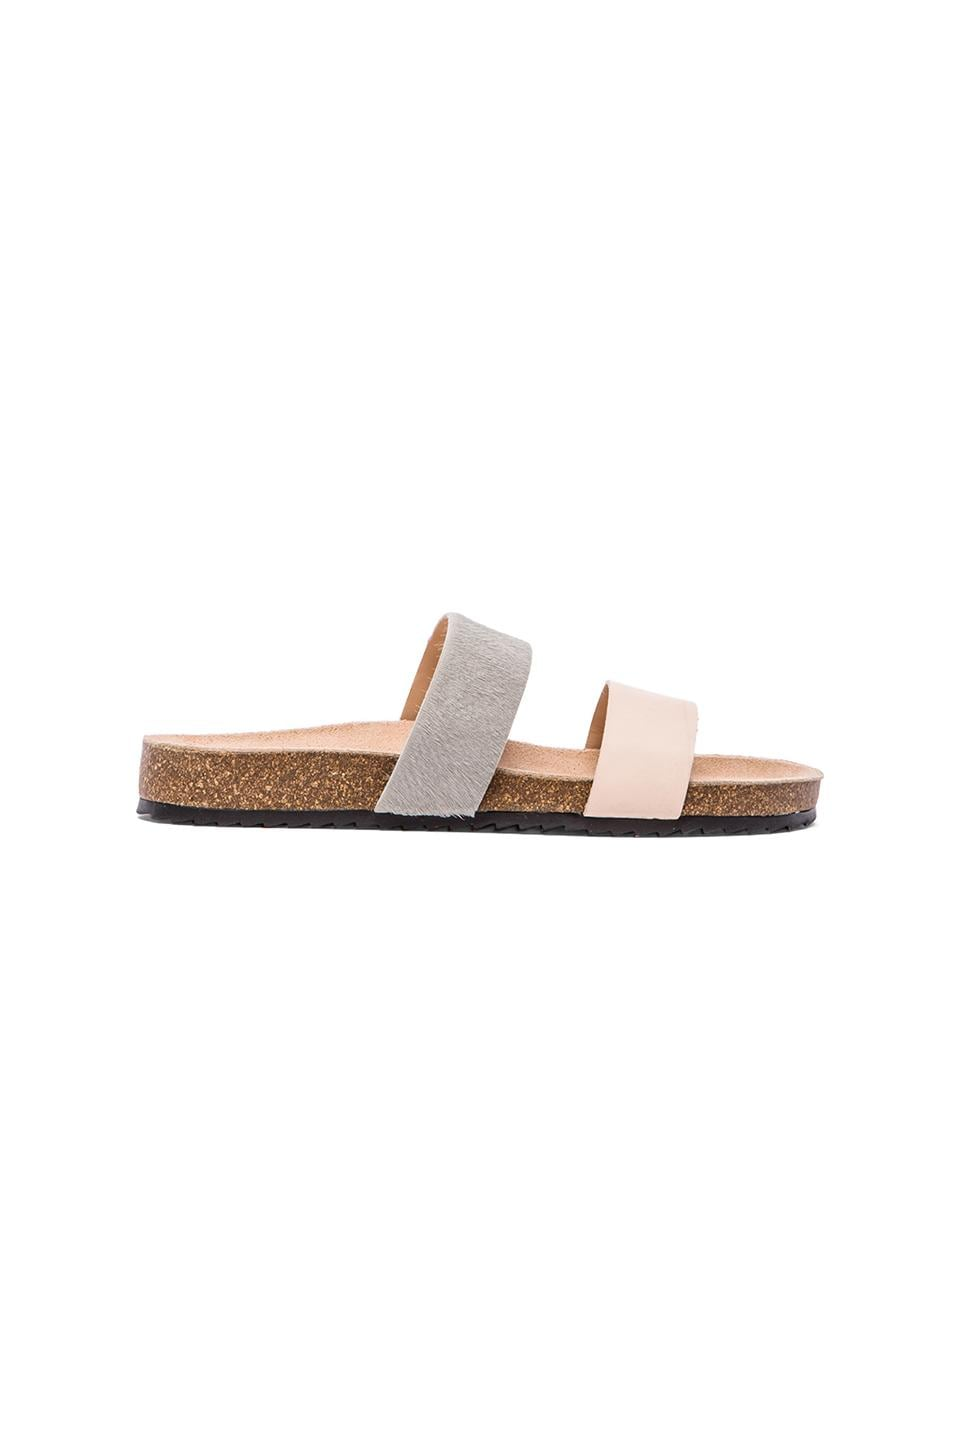 Loeffler Randall Paz Sandal with Calf Fur in New Natural/Cool Grey